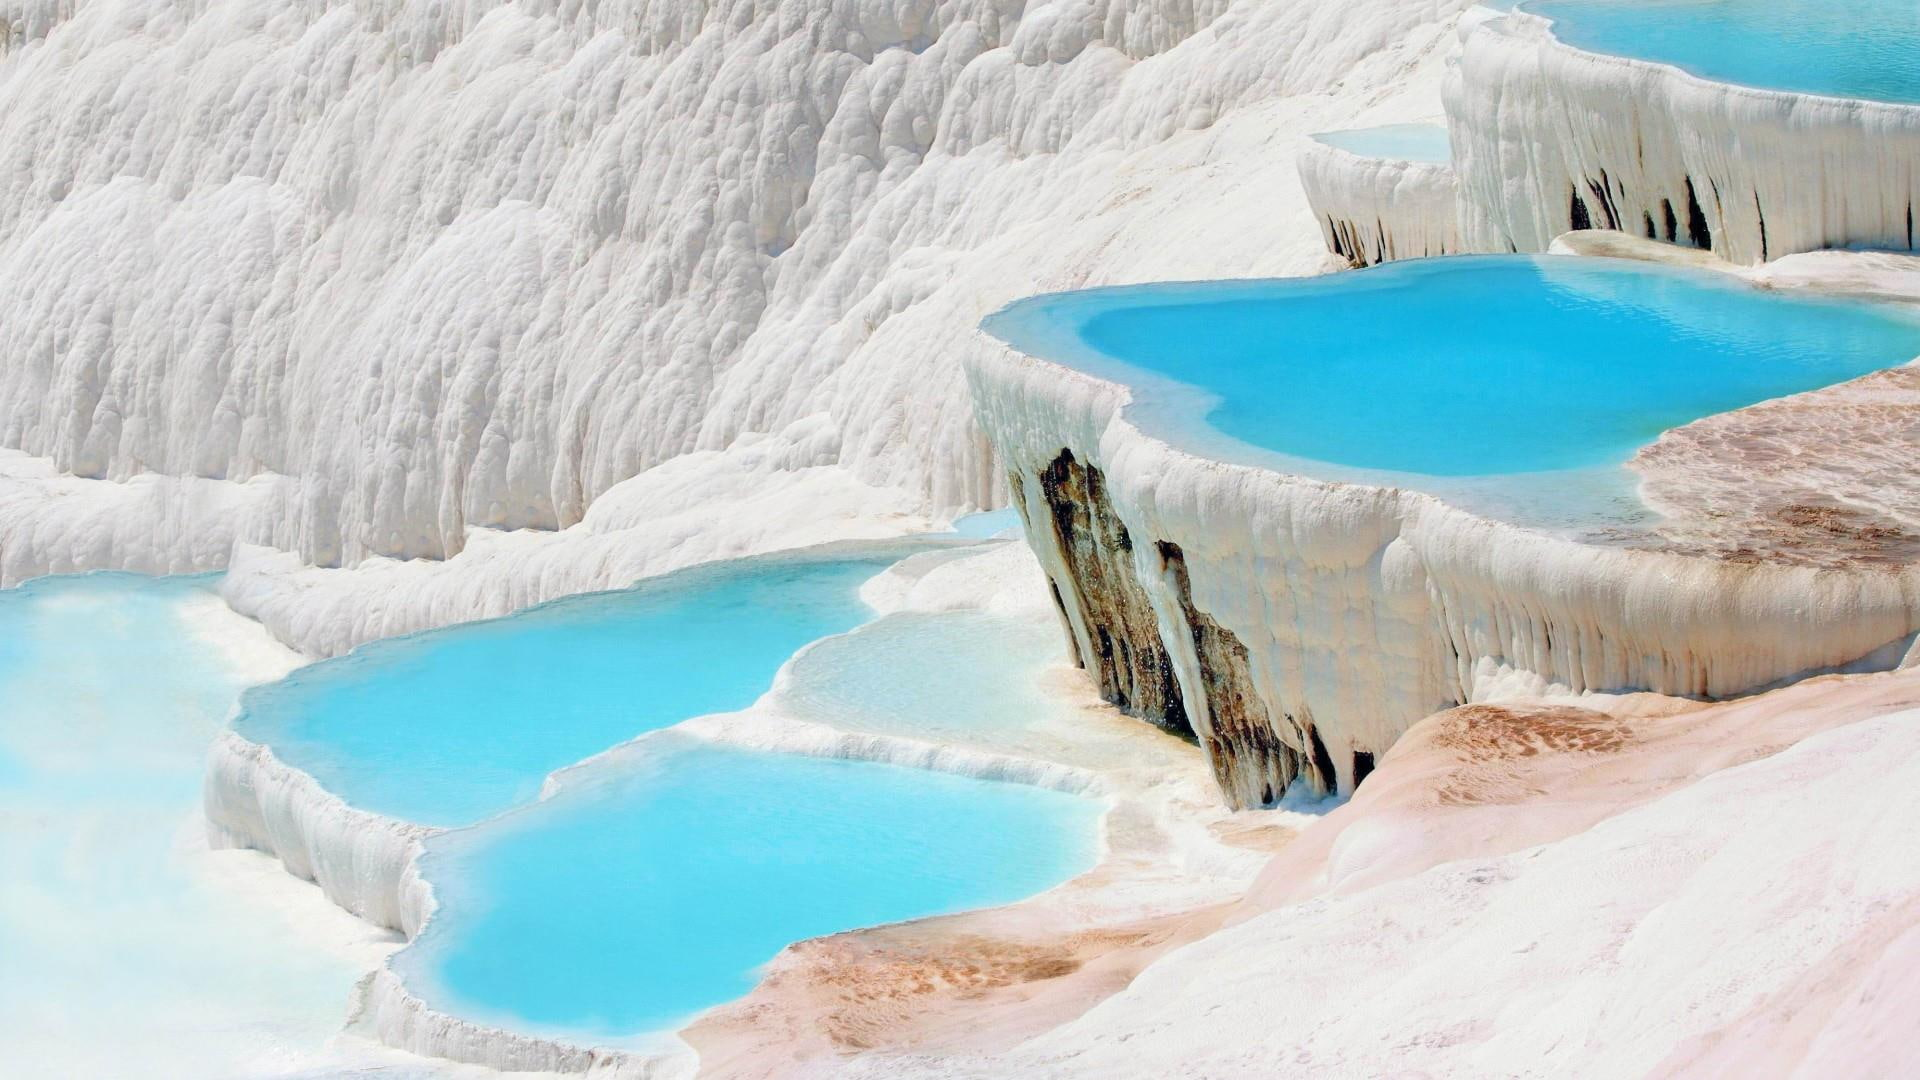 pamukkale-turkey-water-thermal-pools-wallpaper-89c0e87db18a8d3b968798af8051760d